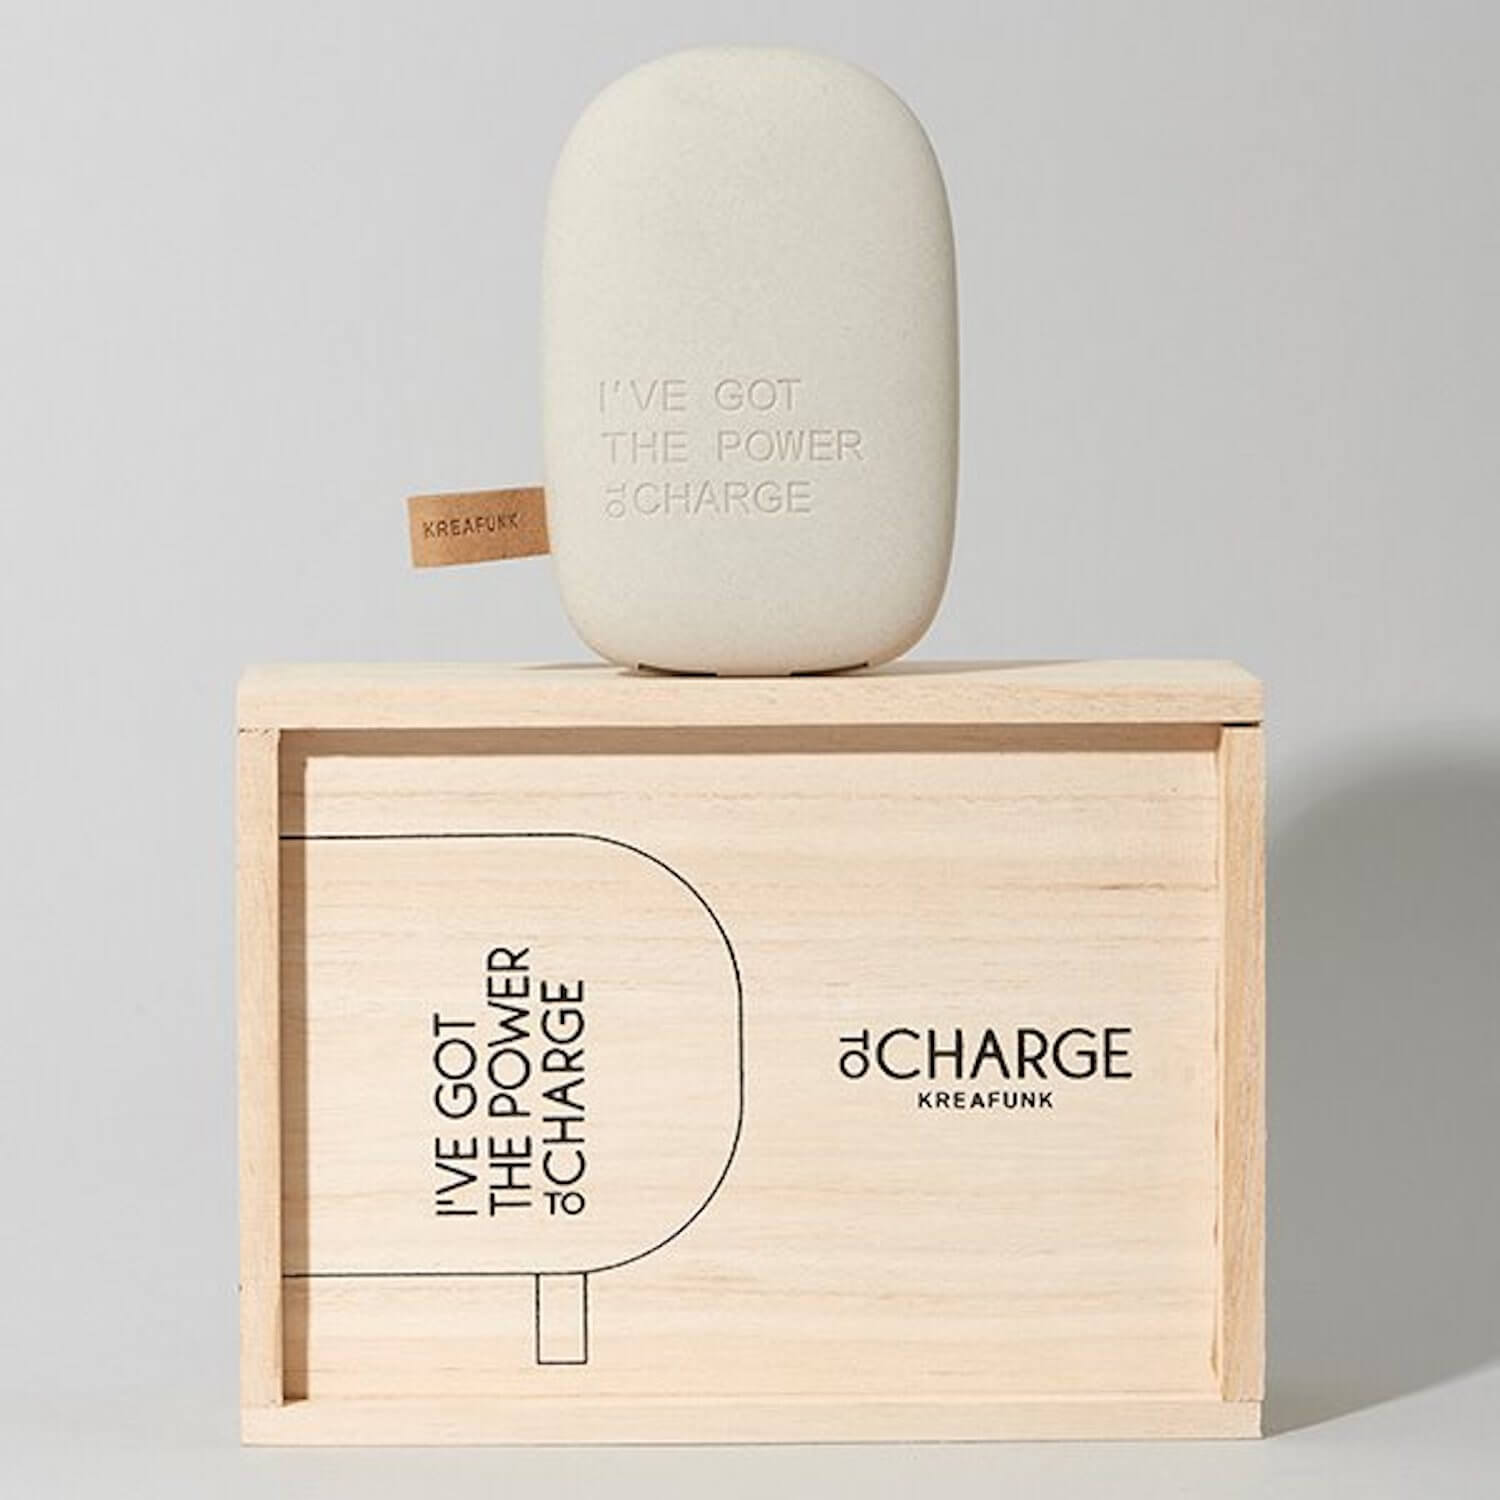 est living gift guide the one who has it all power charger